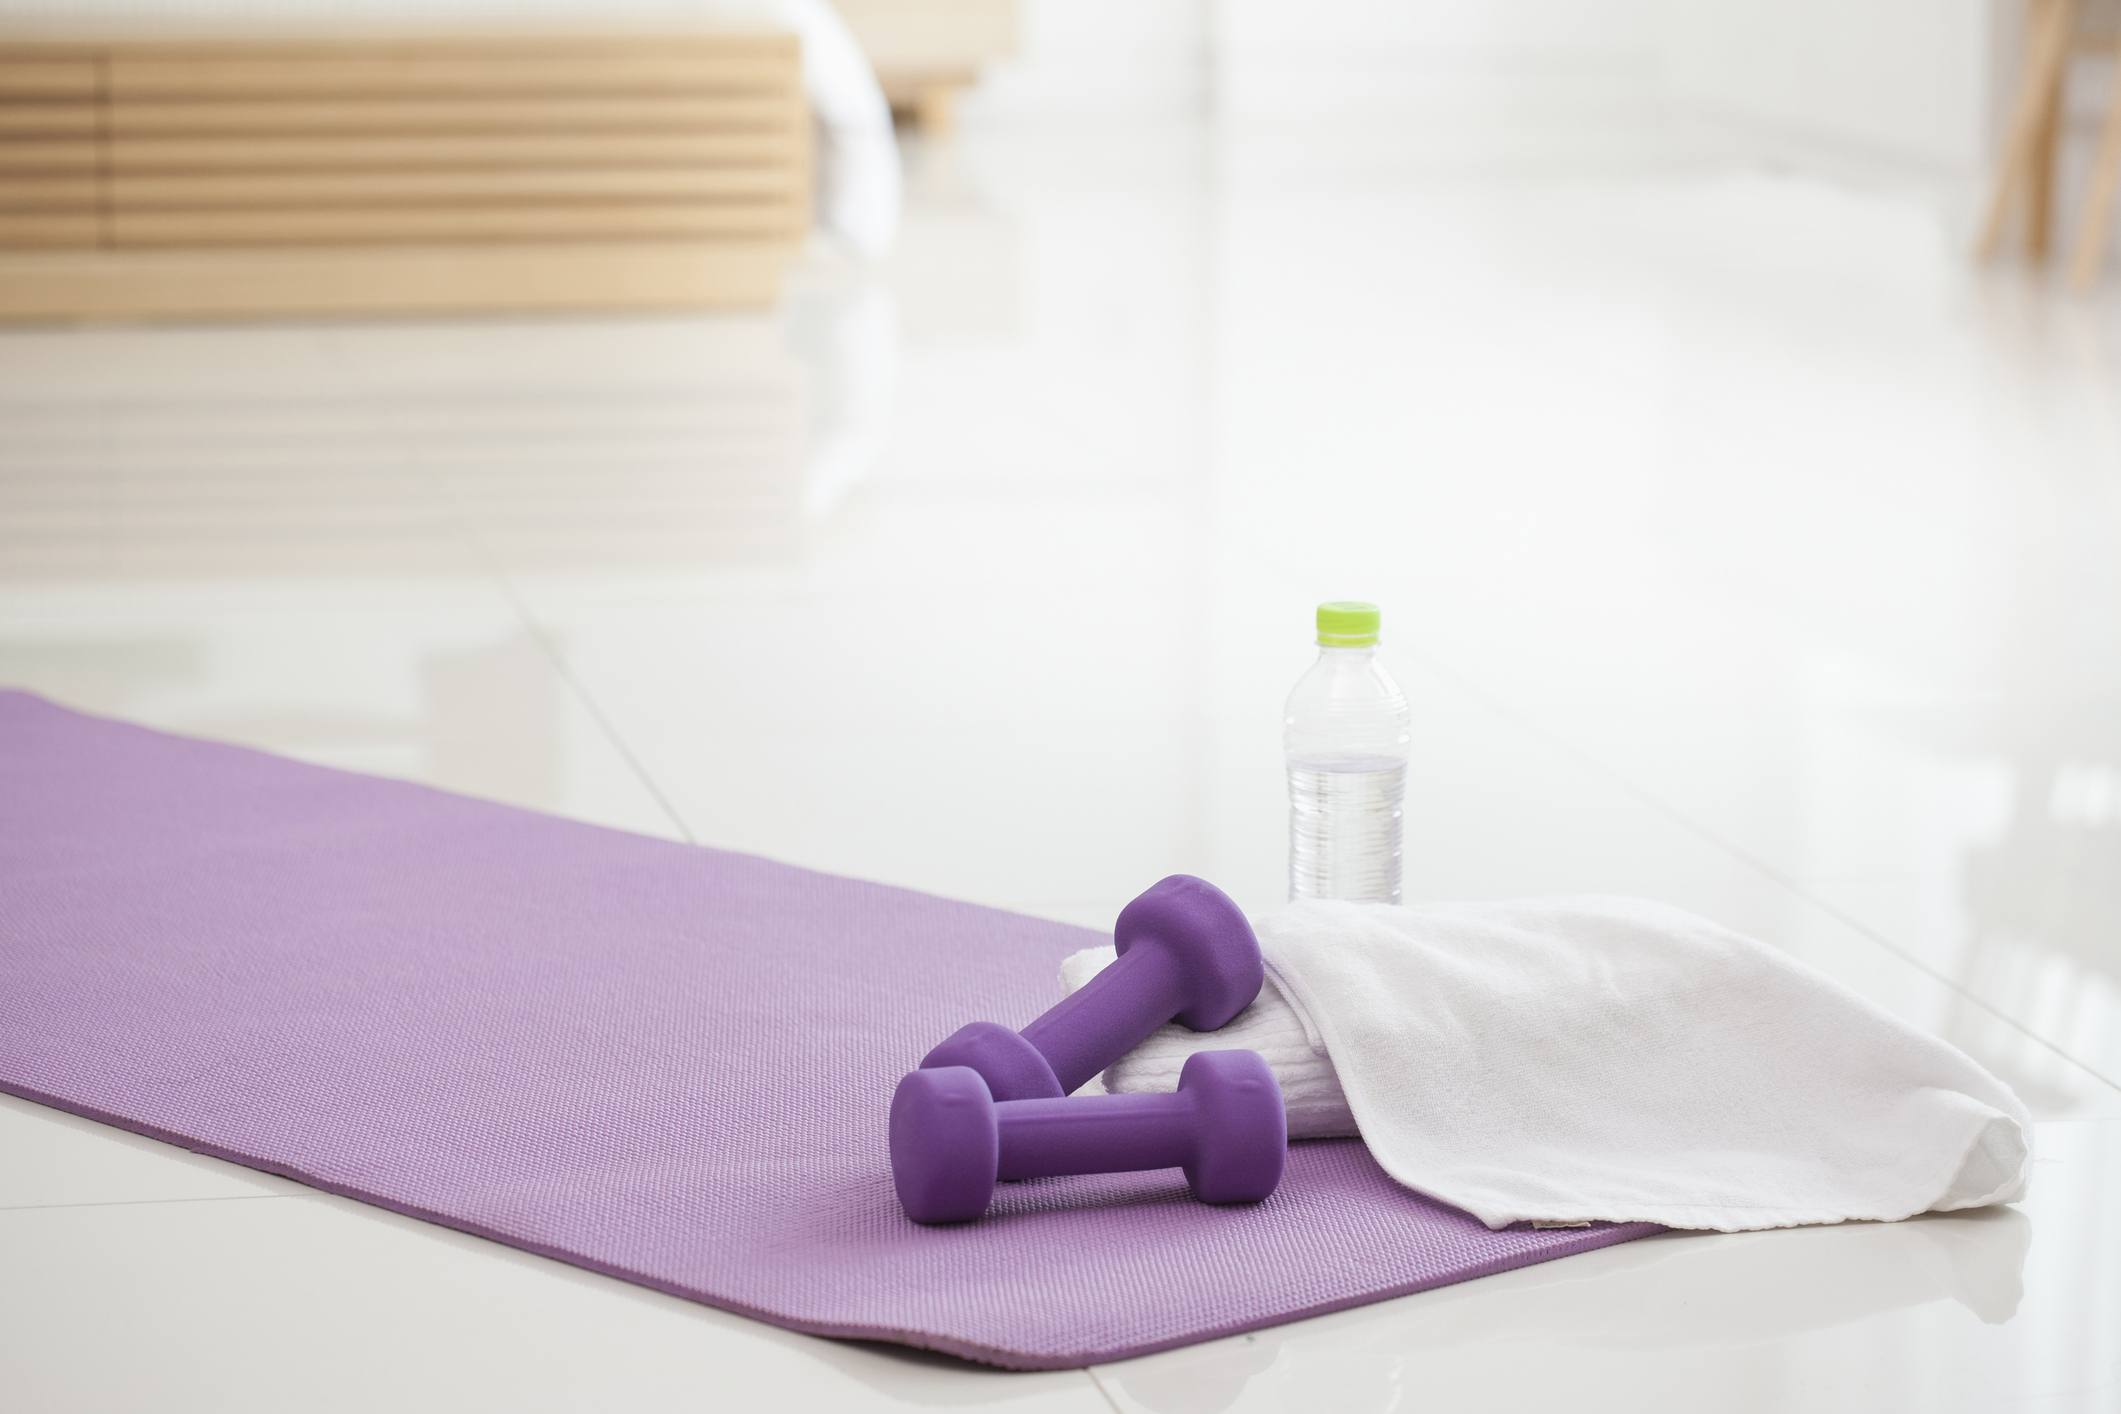 Dumbells sit on a yoga mat along with a rolled towel and a water bottle.